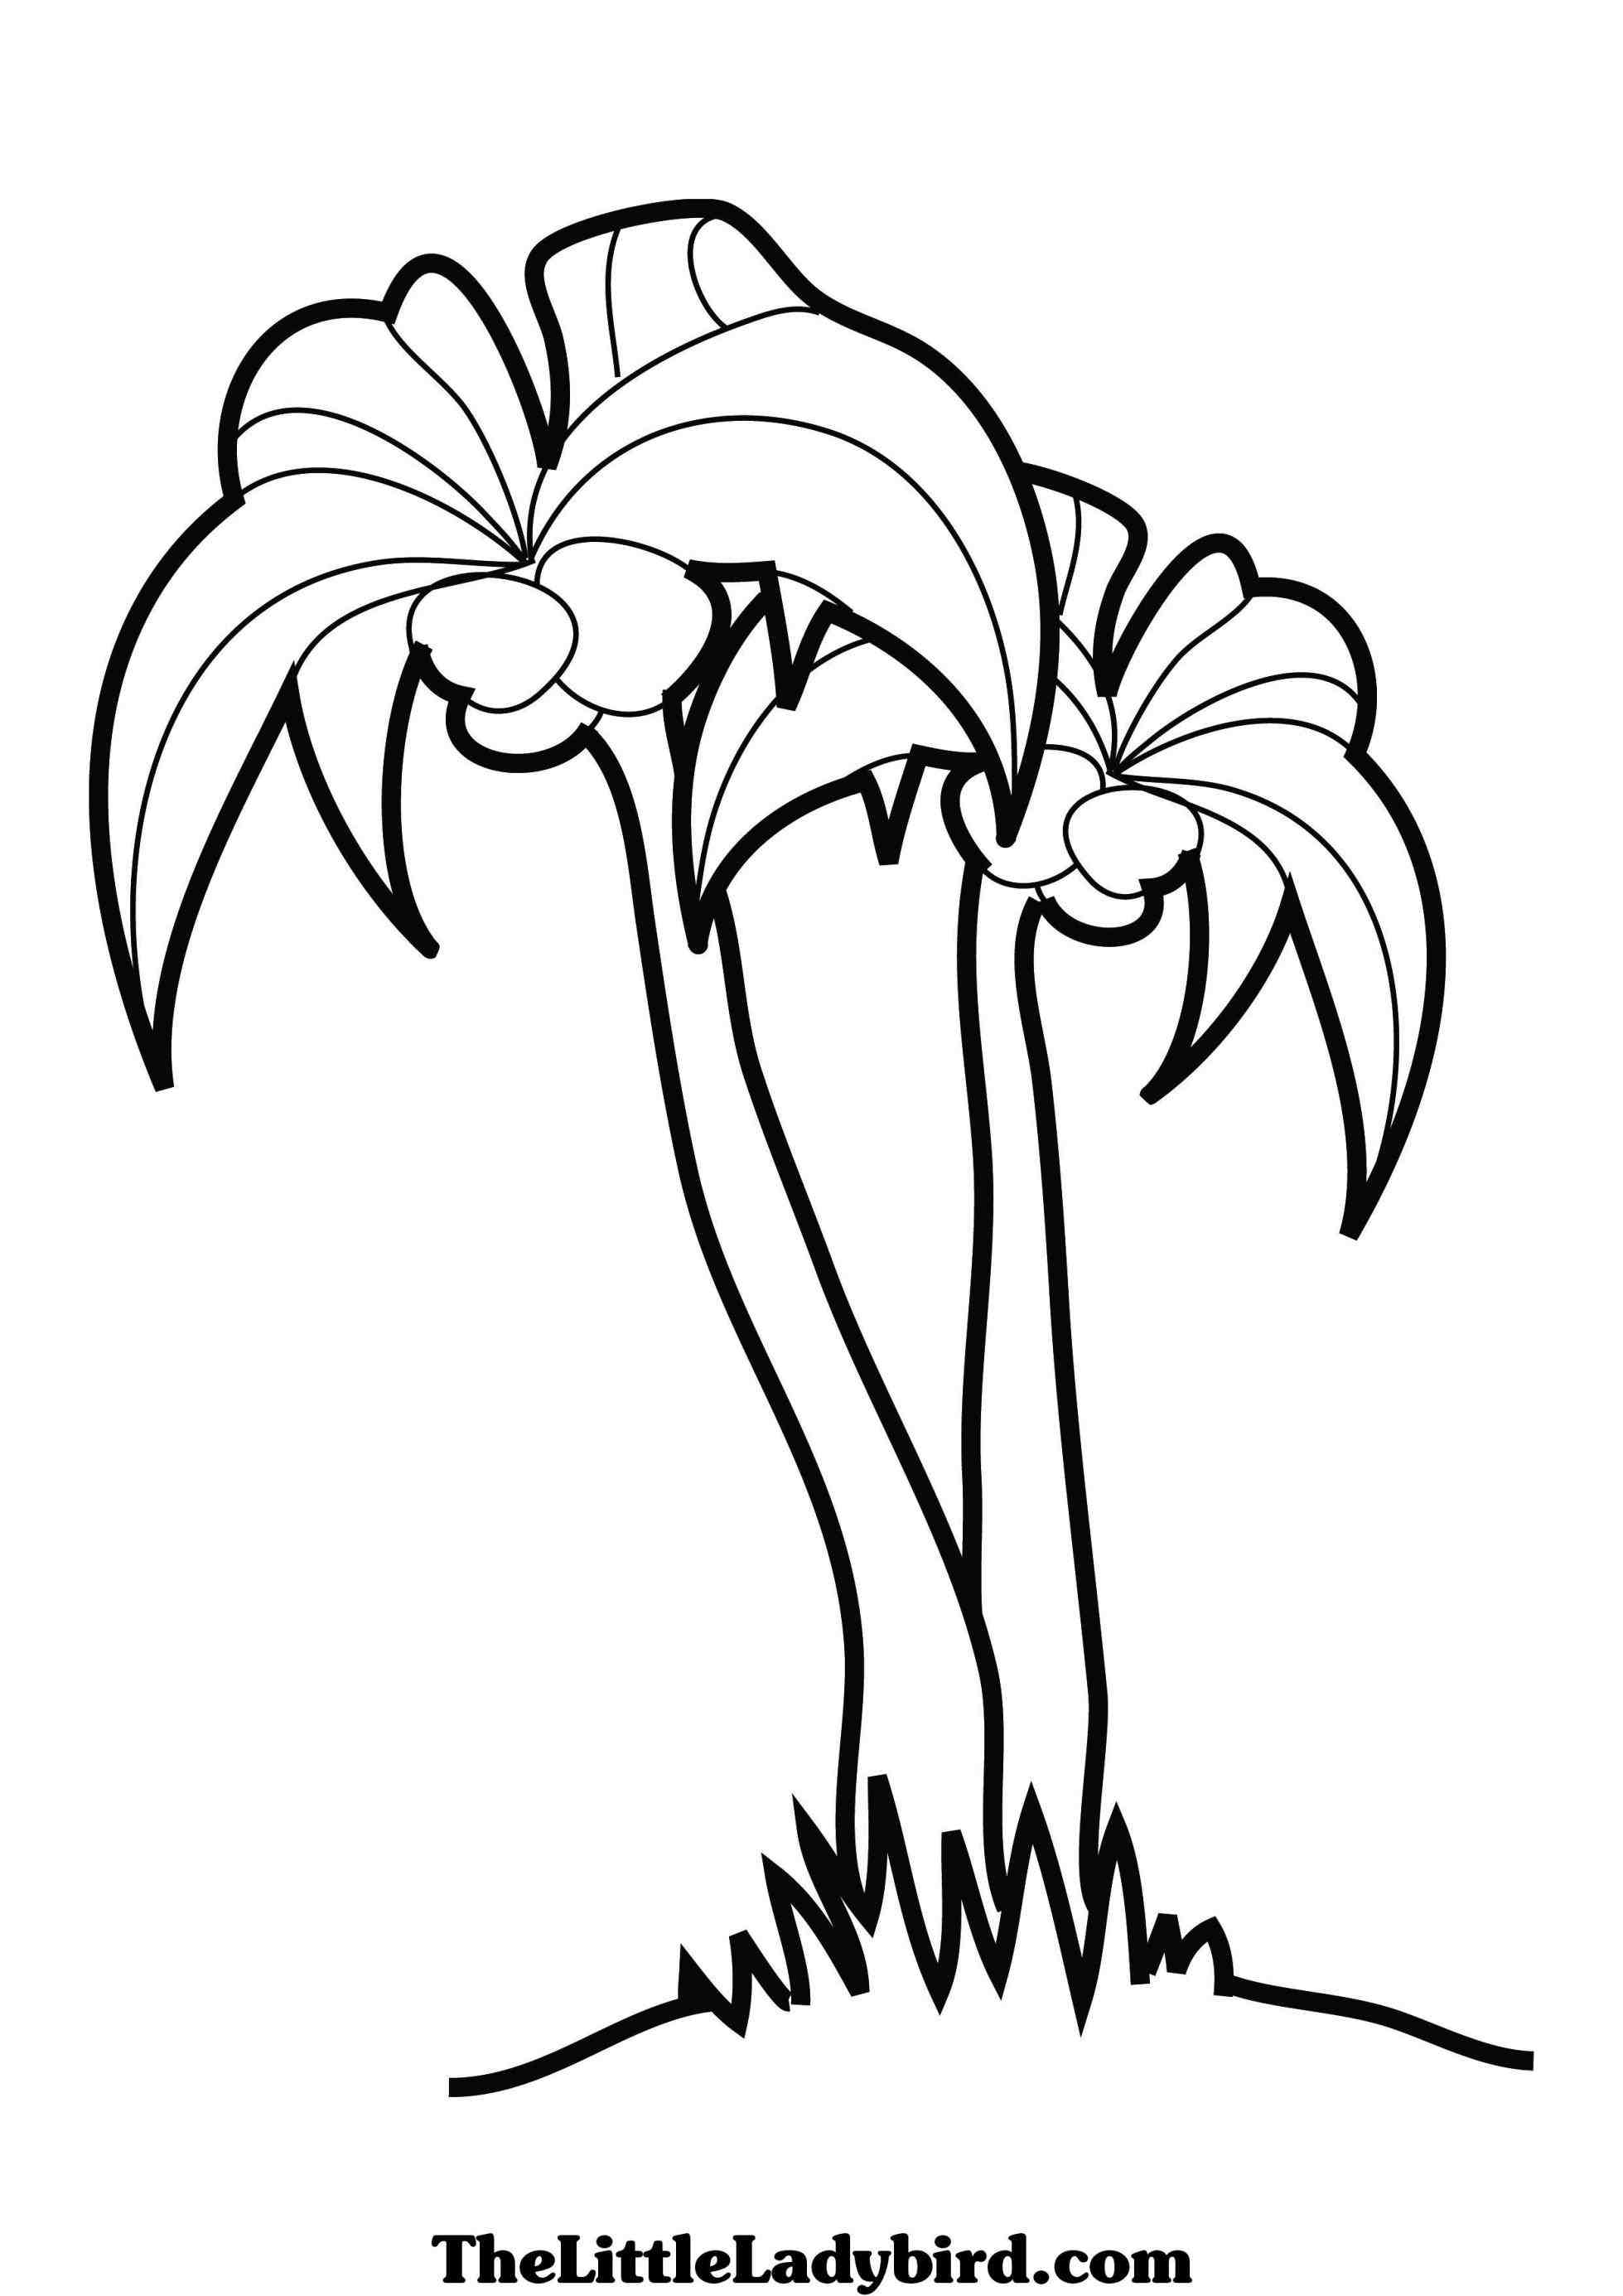 branch coloring page branch coloring pages coloring pages to download and print branch coloring page